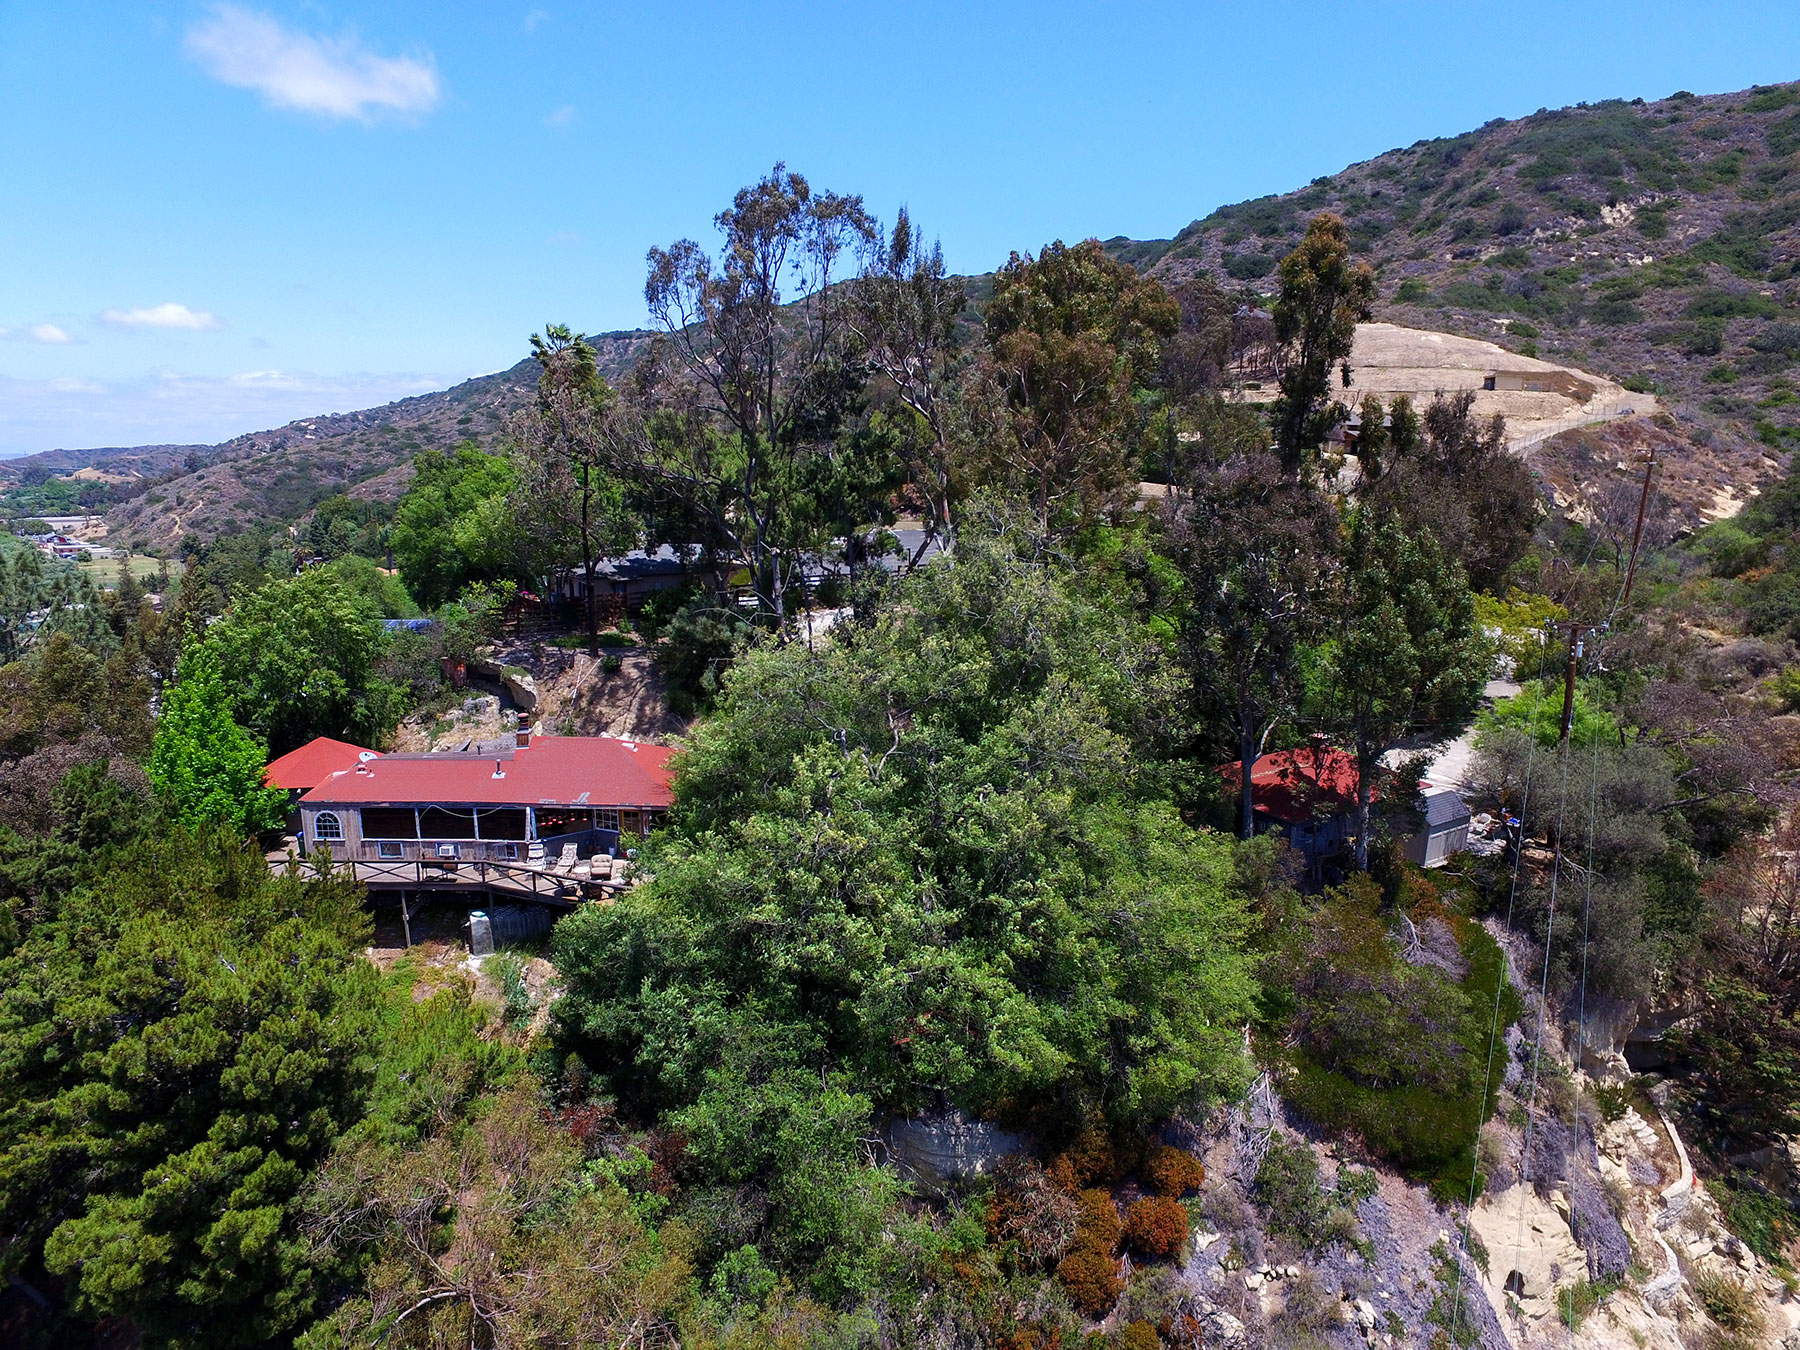 Casa Unifamiliar por un Venta en 20950 Laguna Canyon Road Laguna Beach, California, 92651 Estados Unidos